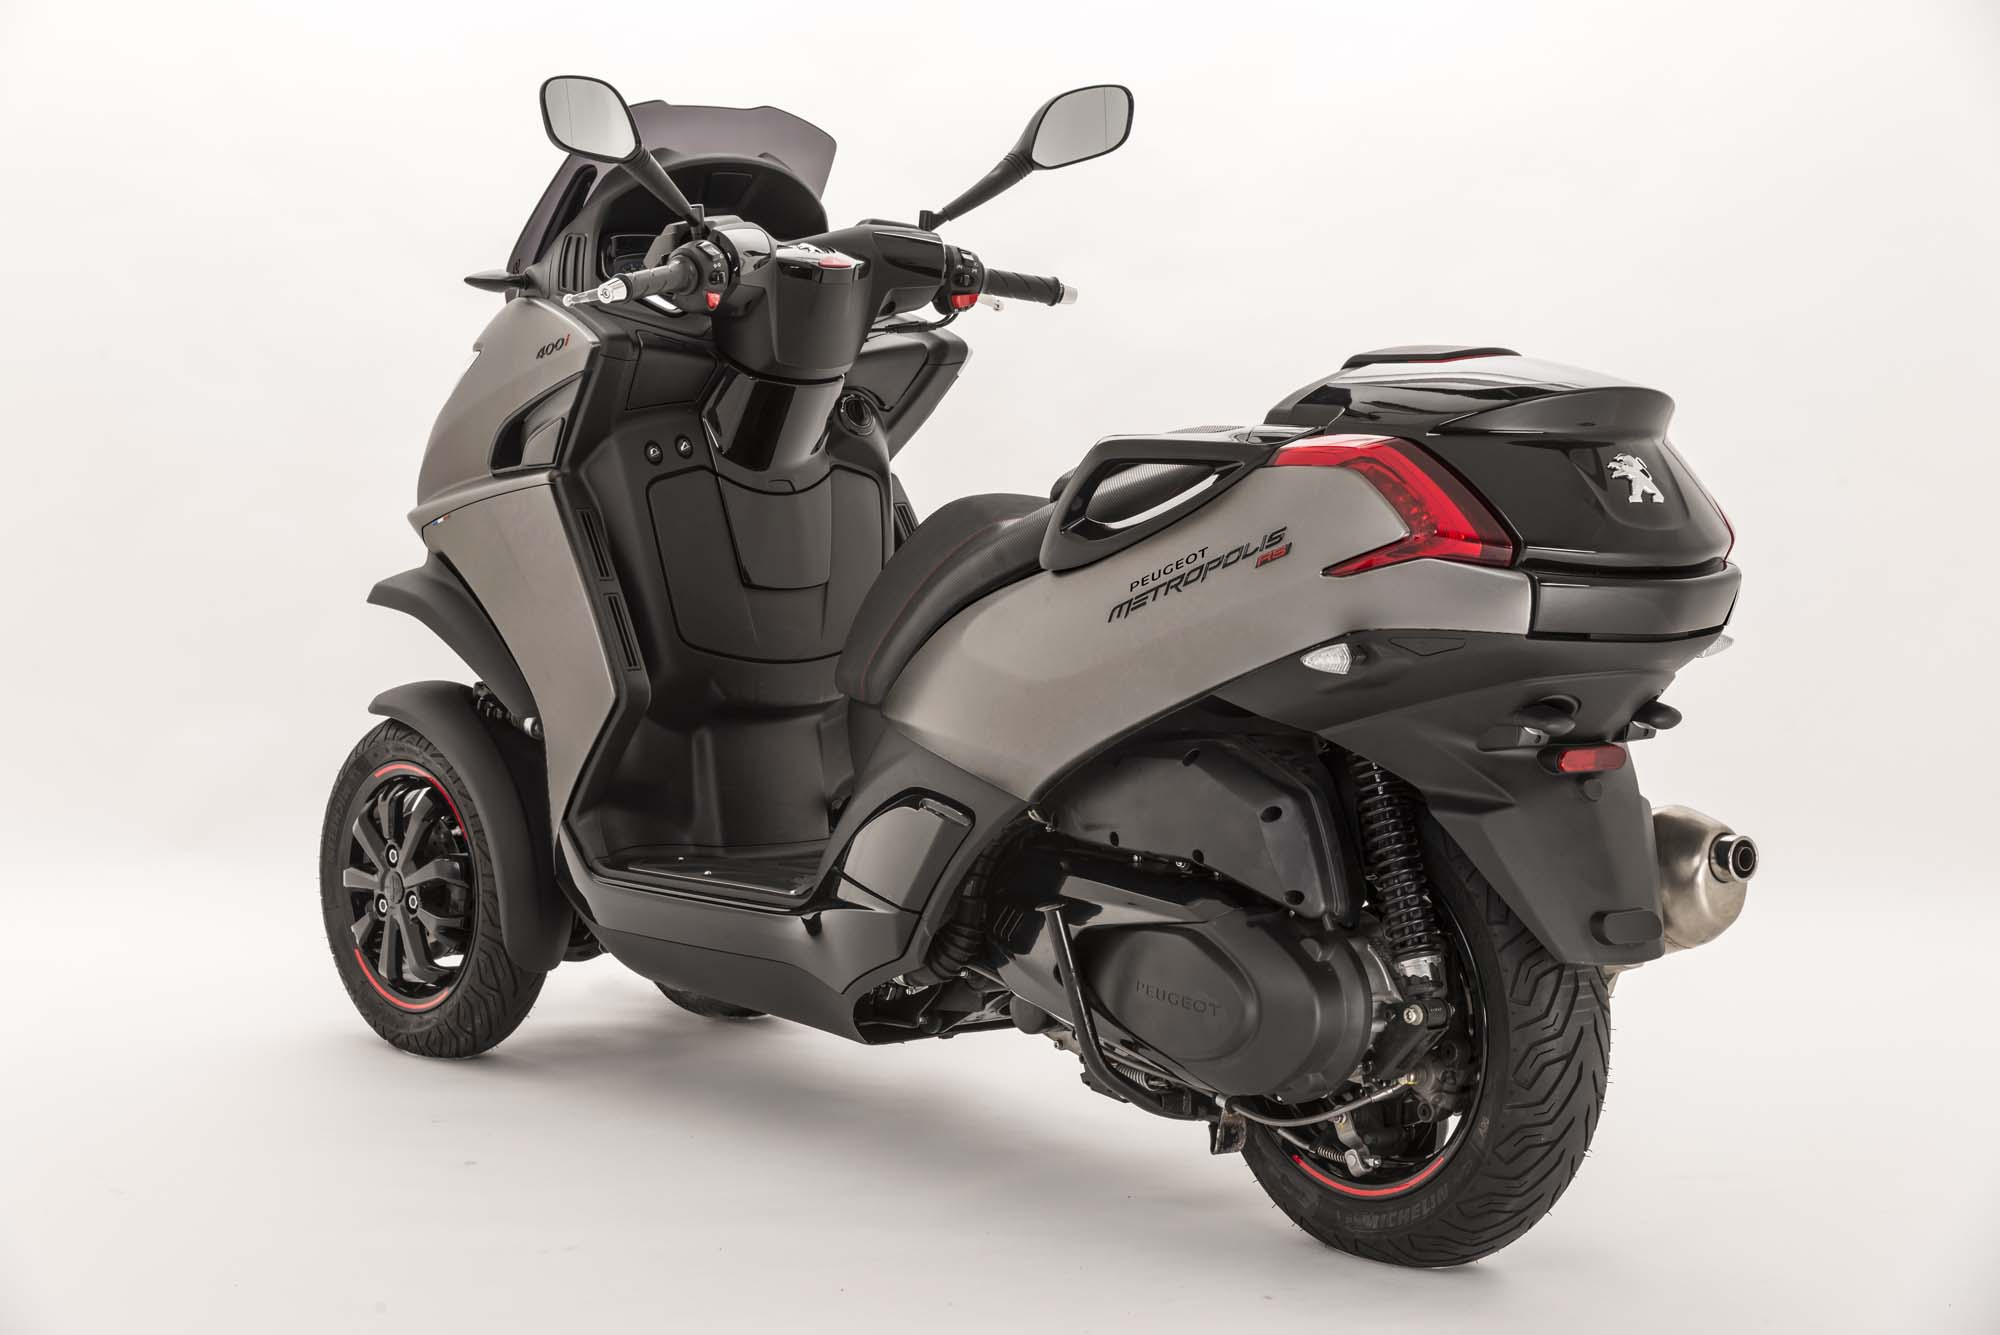 Peugeot Metropolis 400i RS - All technical Data of the